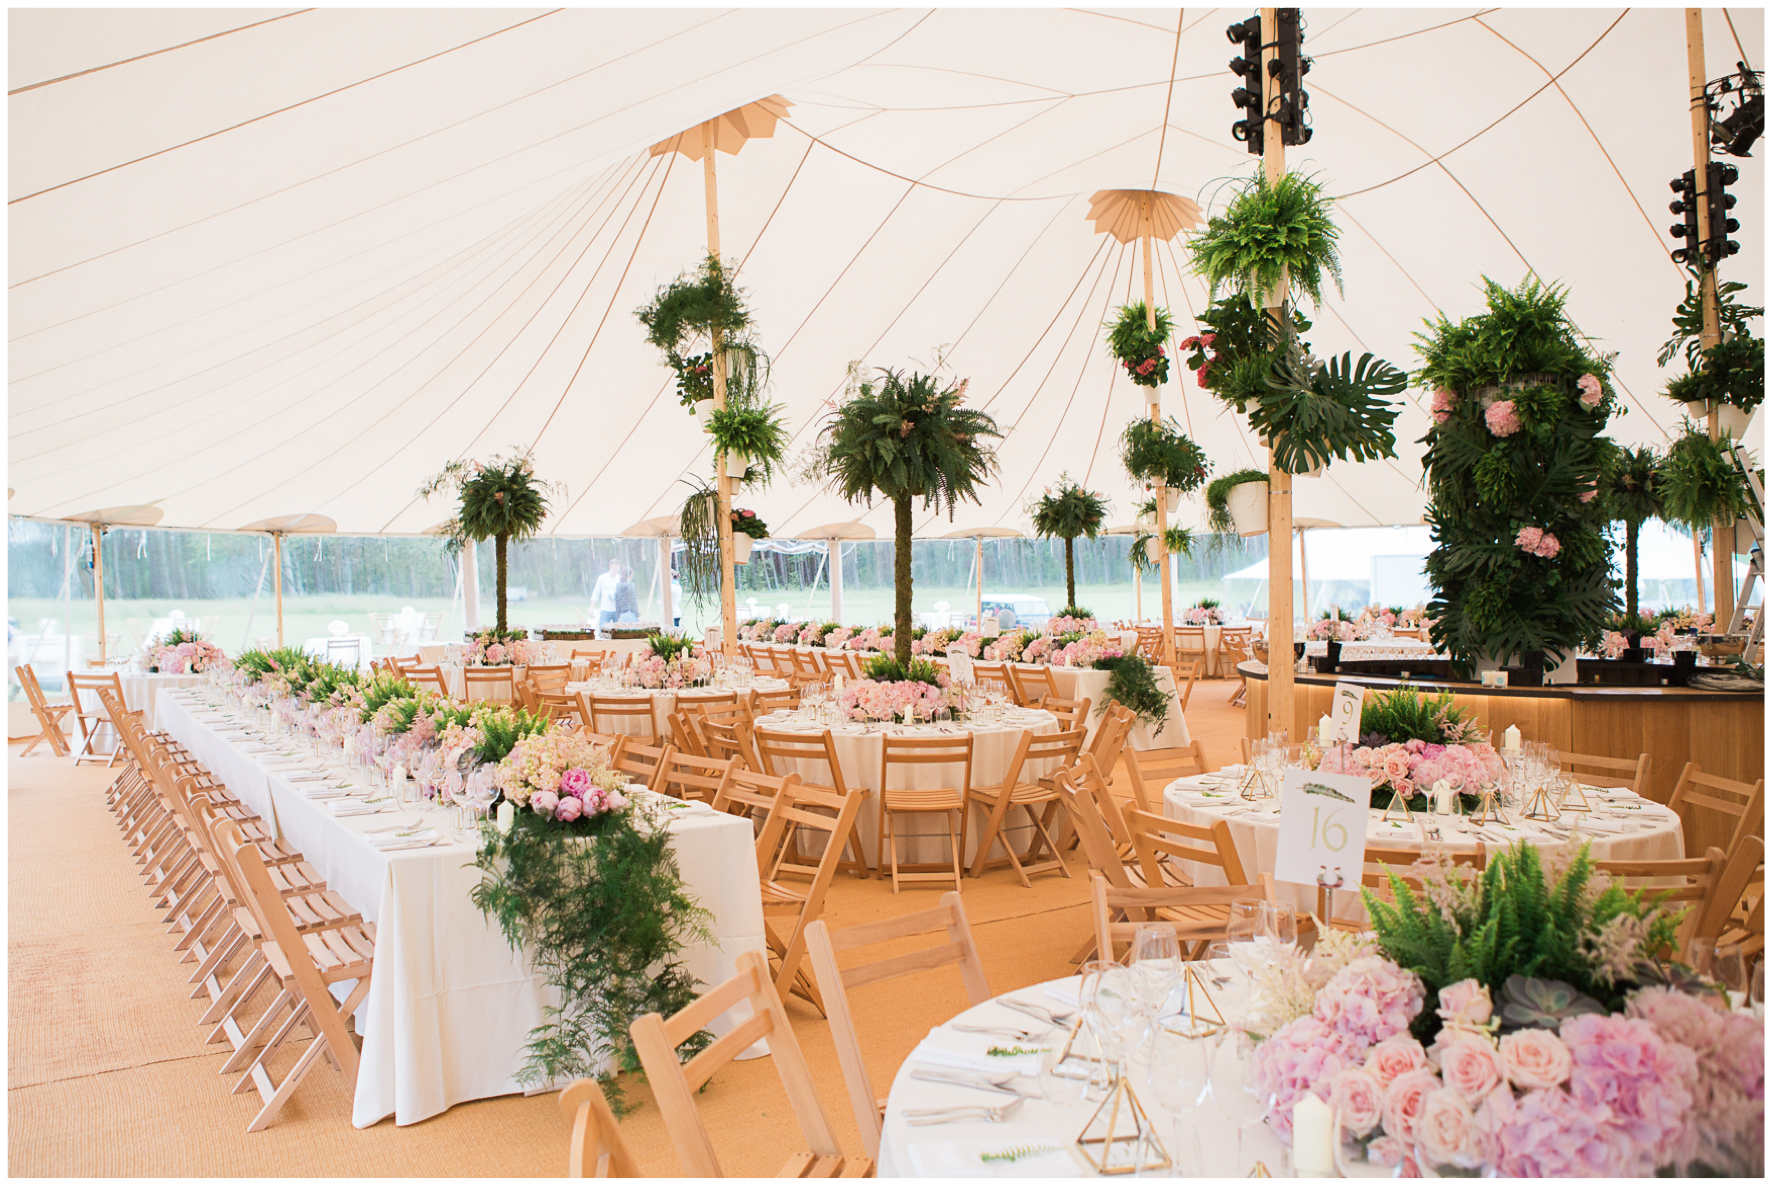 glamping wedding, Lucy Davenport Photography, home wedding, Sperry tent, PapaKata, ferns, greenery, pinks, florals